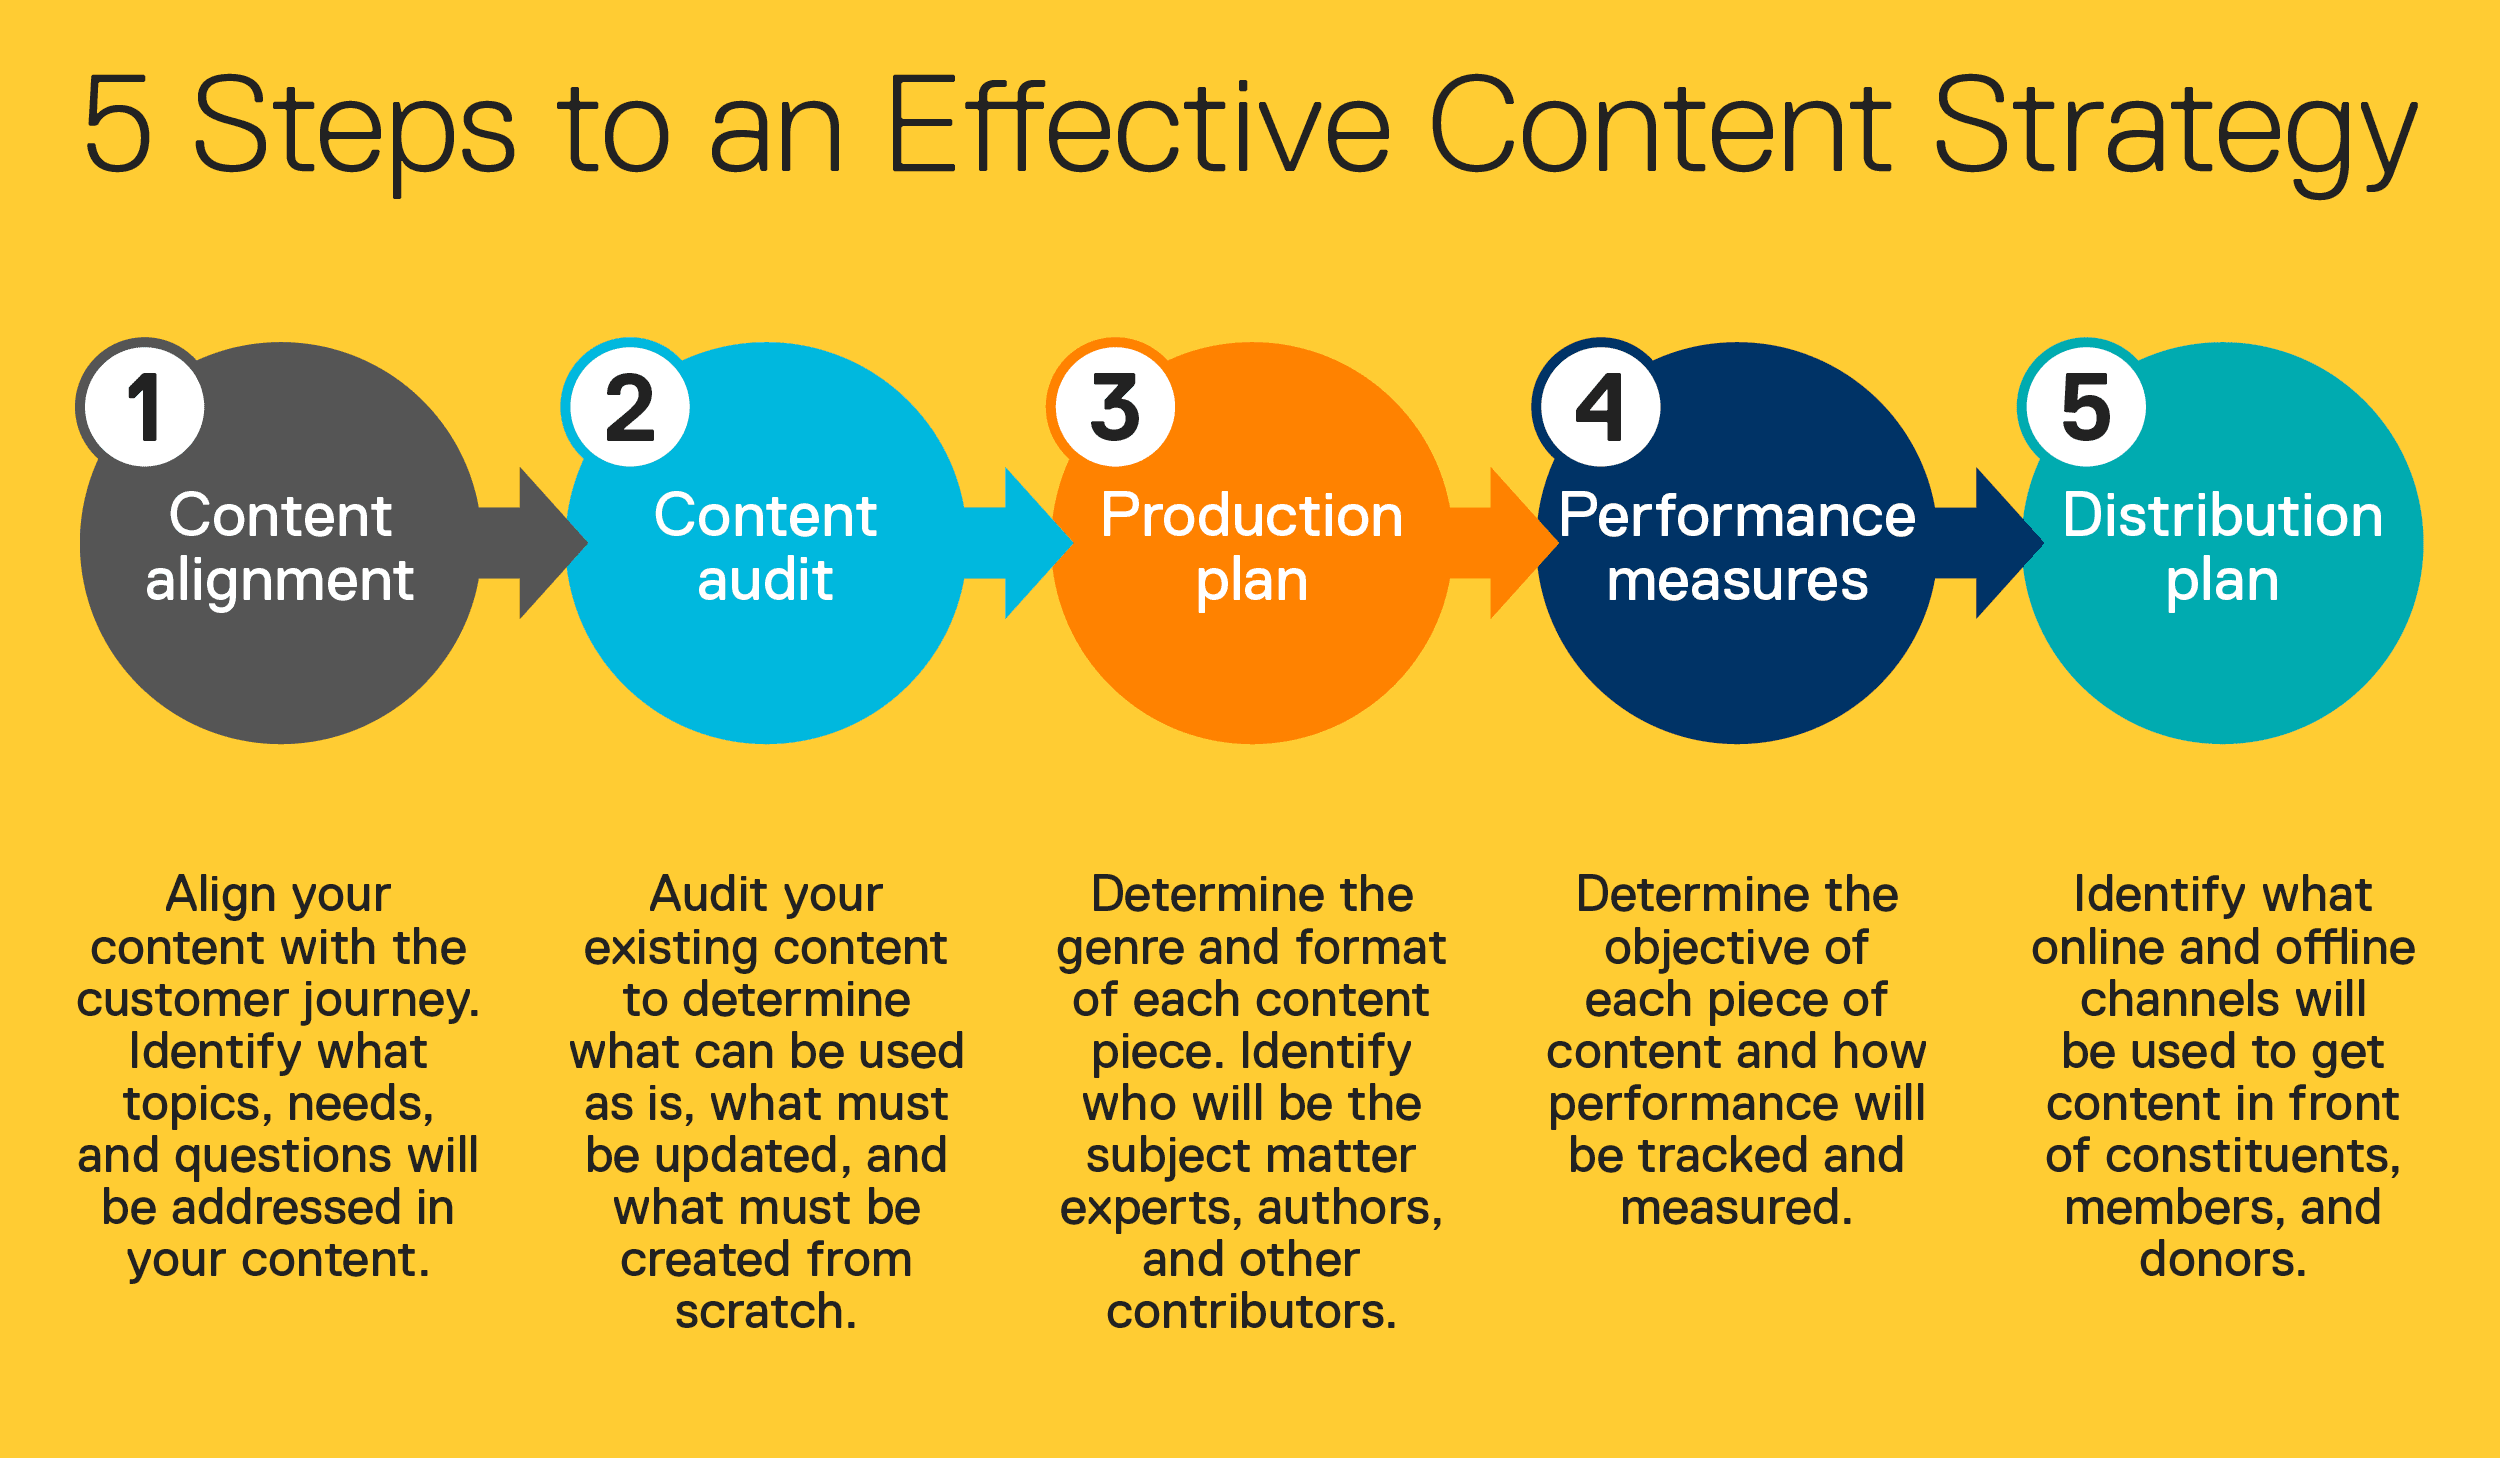 5 steps to an effective content strategy for your business - How to Build an Online Presence from Nothing